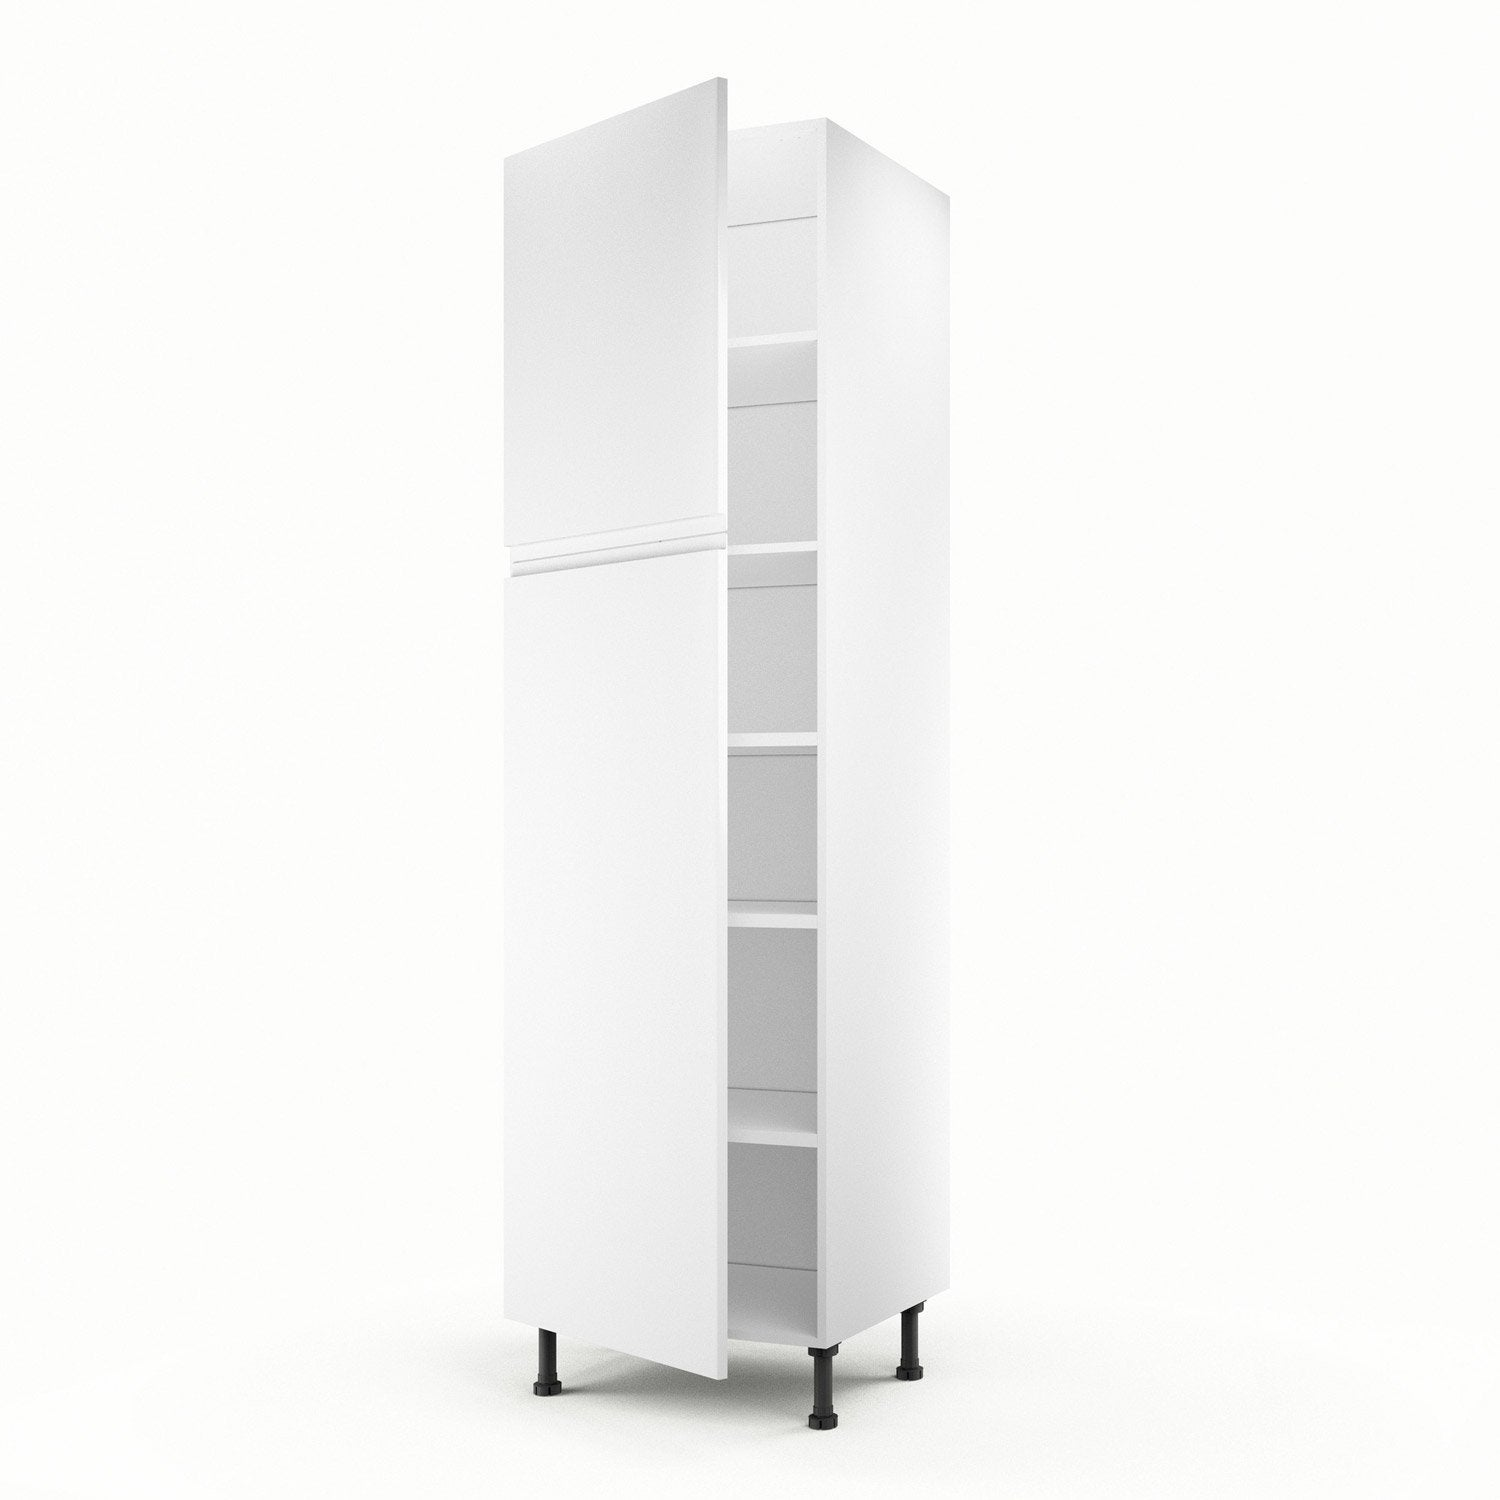 meuble de cuisine colonne blanc portes graphic h x l x p cm leroy merlin with meuble colonne. Black Bedroom Furniture Sets. Home Design Ideas